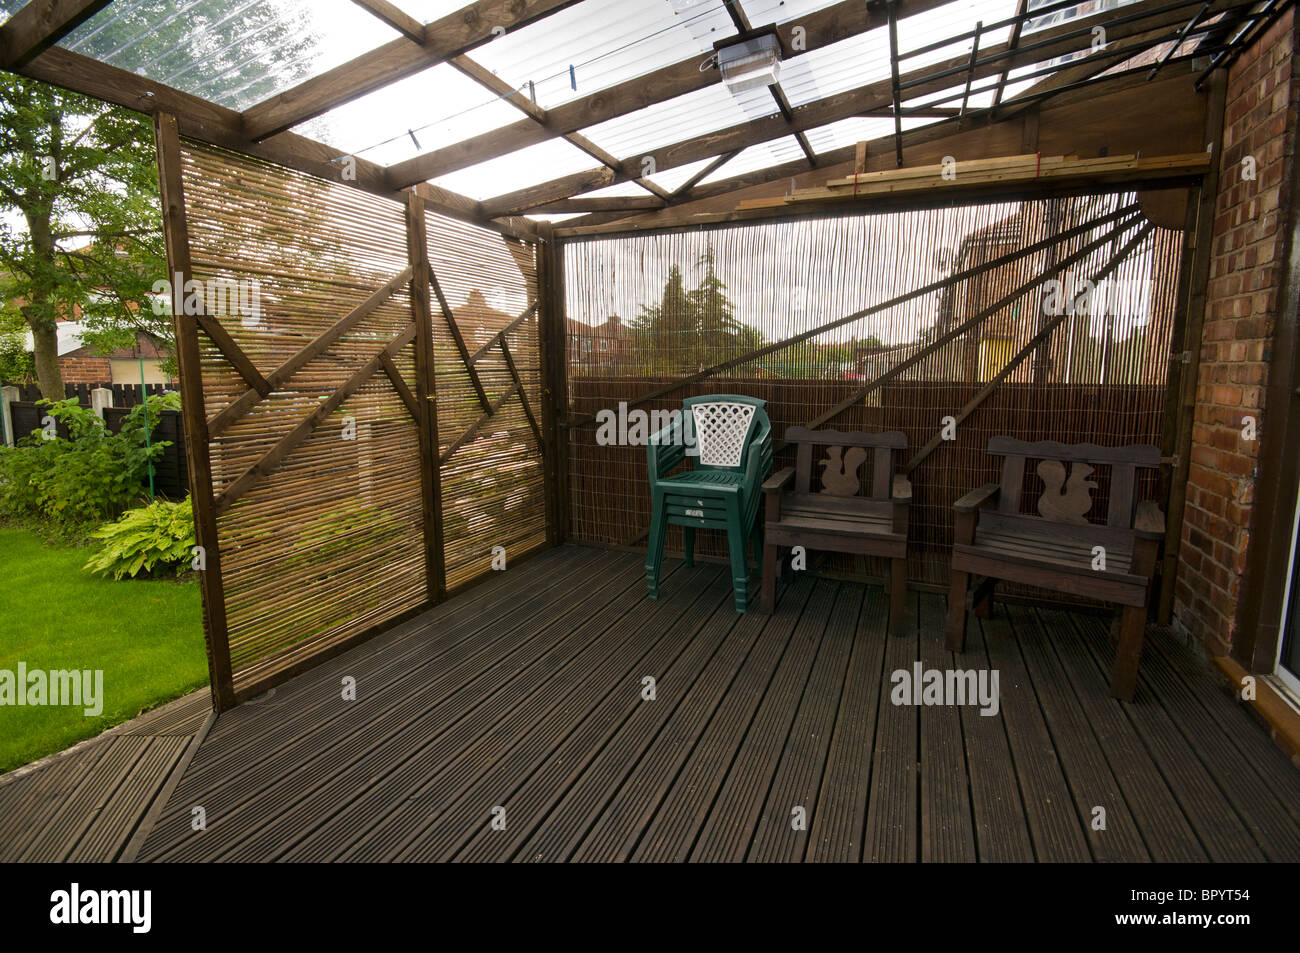 Beautiful Home Built Patio Decking With Corrugated Plastic Roofing And Movable  Screening Panels In A Domestic Setting. Manchester, UK.